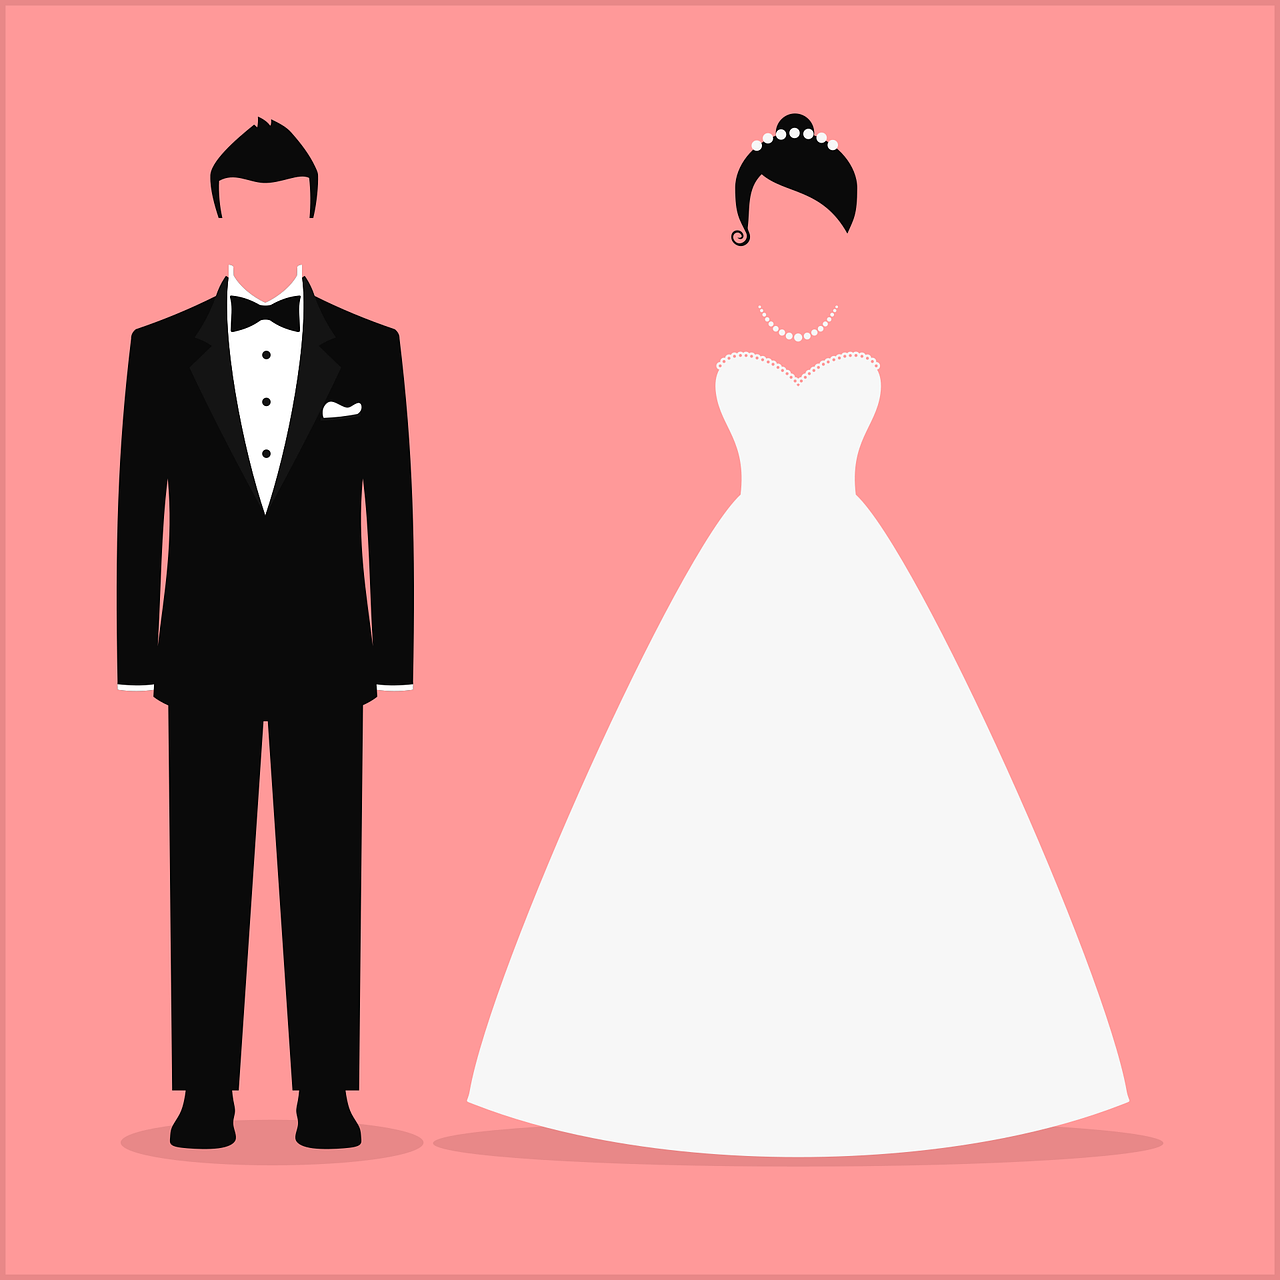 Graphic of a bride and groom.